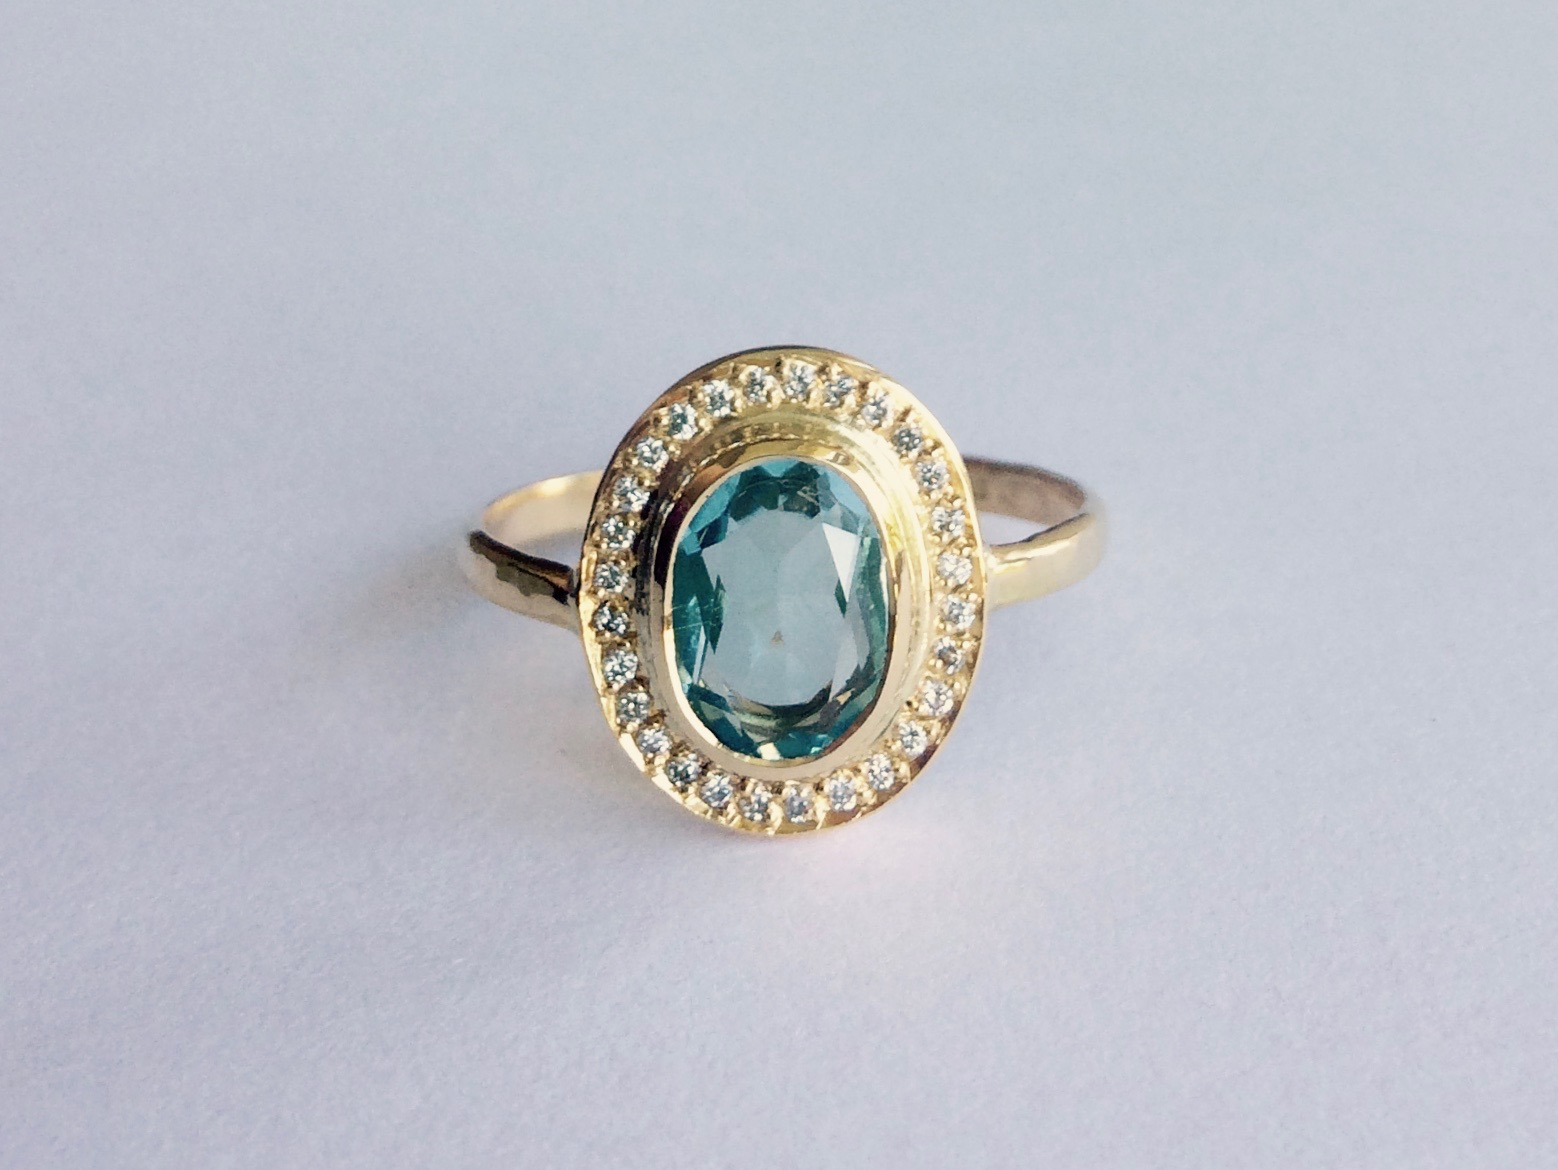 This humdinger of a ring was commissioned by gorgeous Nikki as a treat for herself and features a Topaz belonging to Nikki, set in Recycled 18ct yellow gold and Ethical Canadian Diamonds